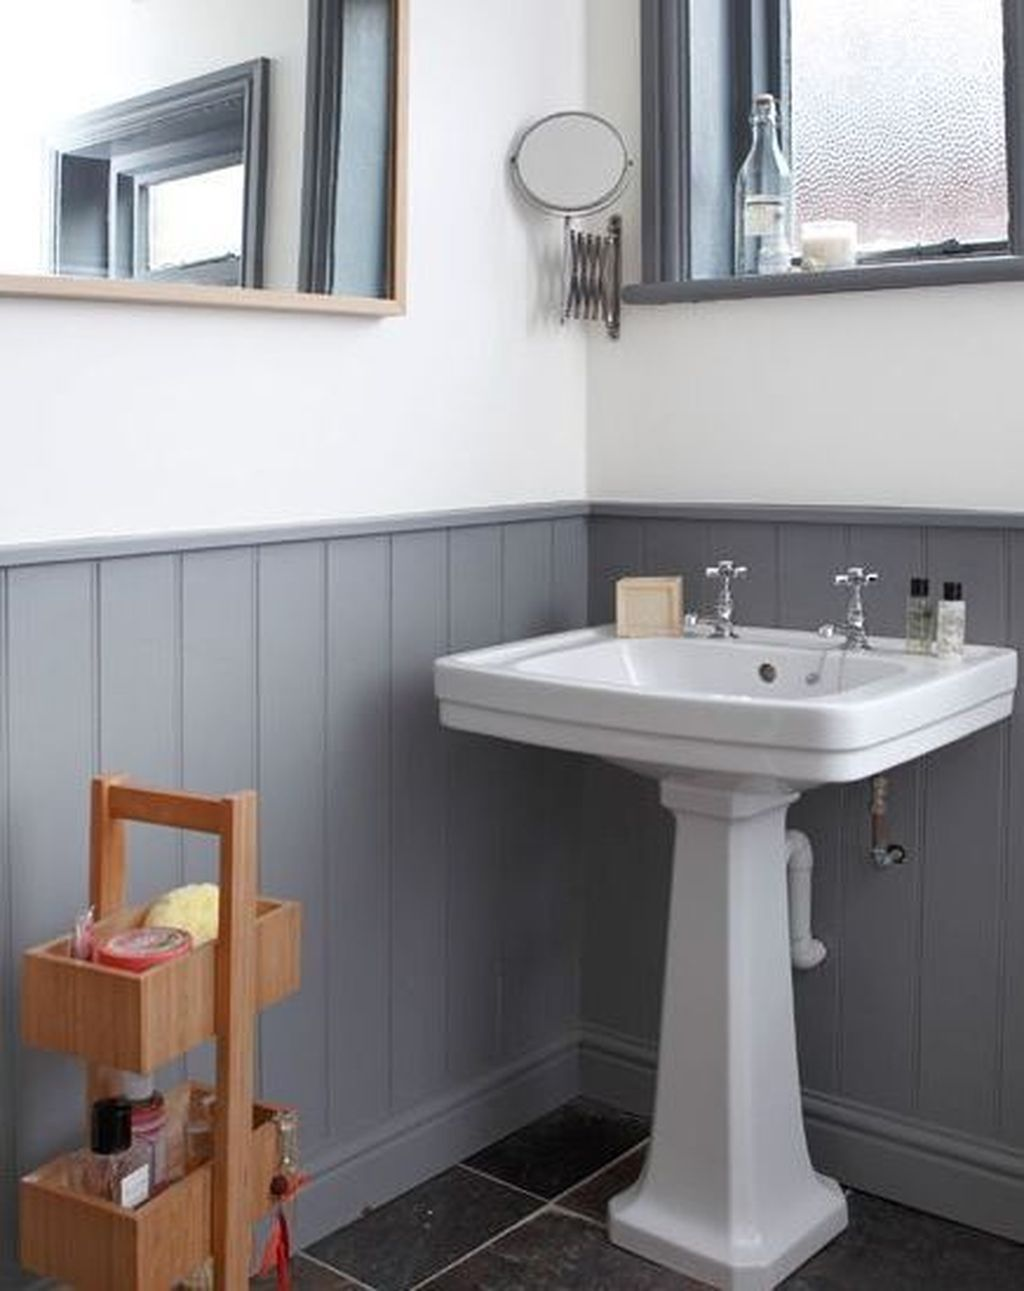 34 popular traditional small bathroom decor ideas to try